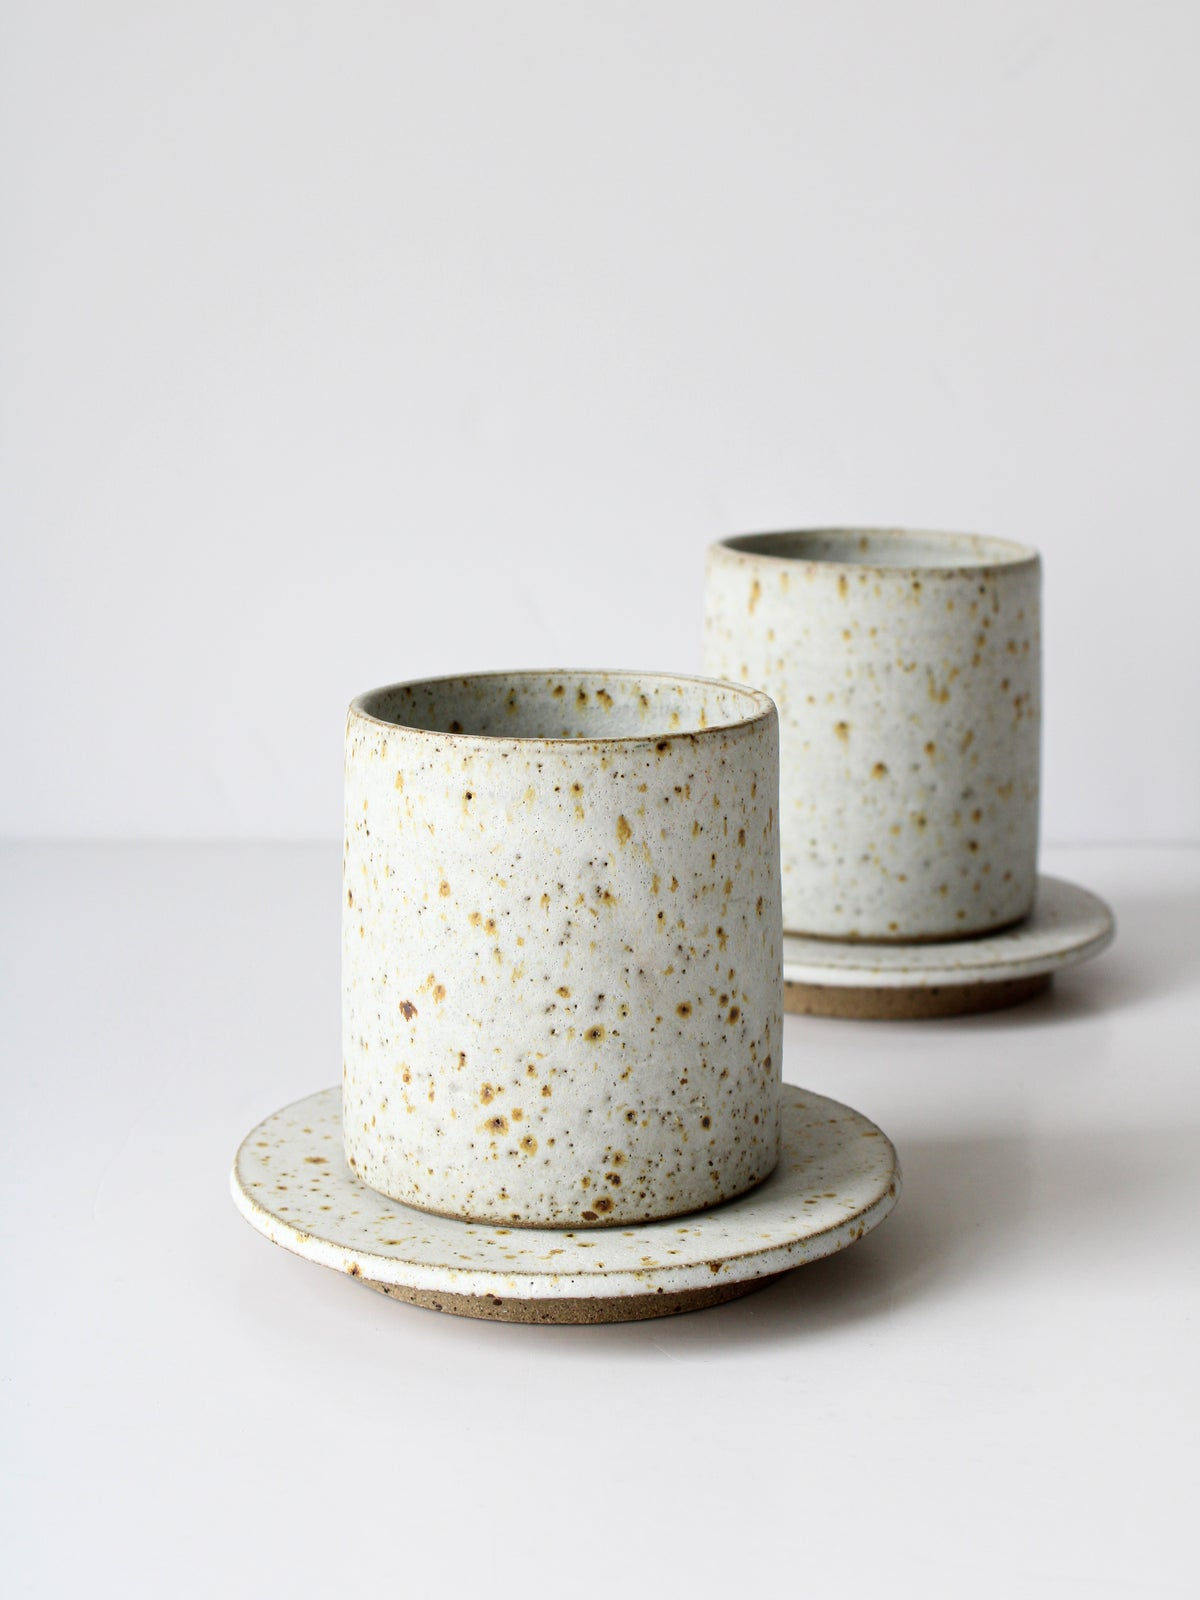 Image of cup with saucer